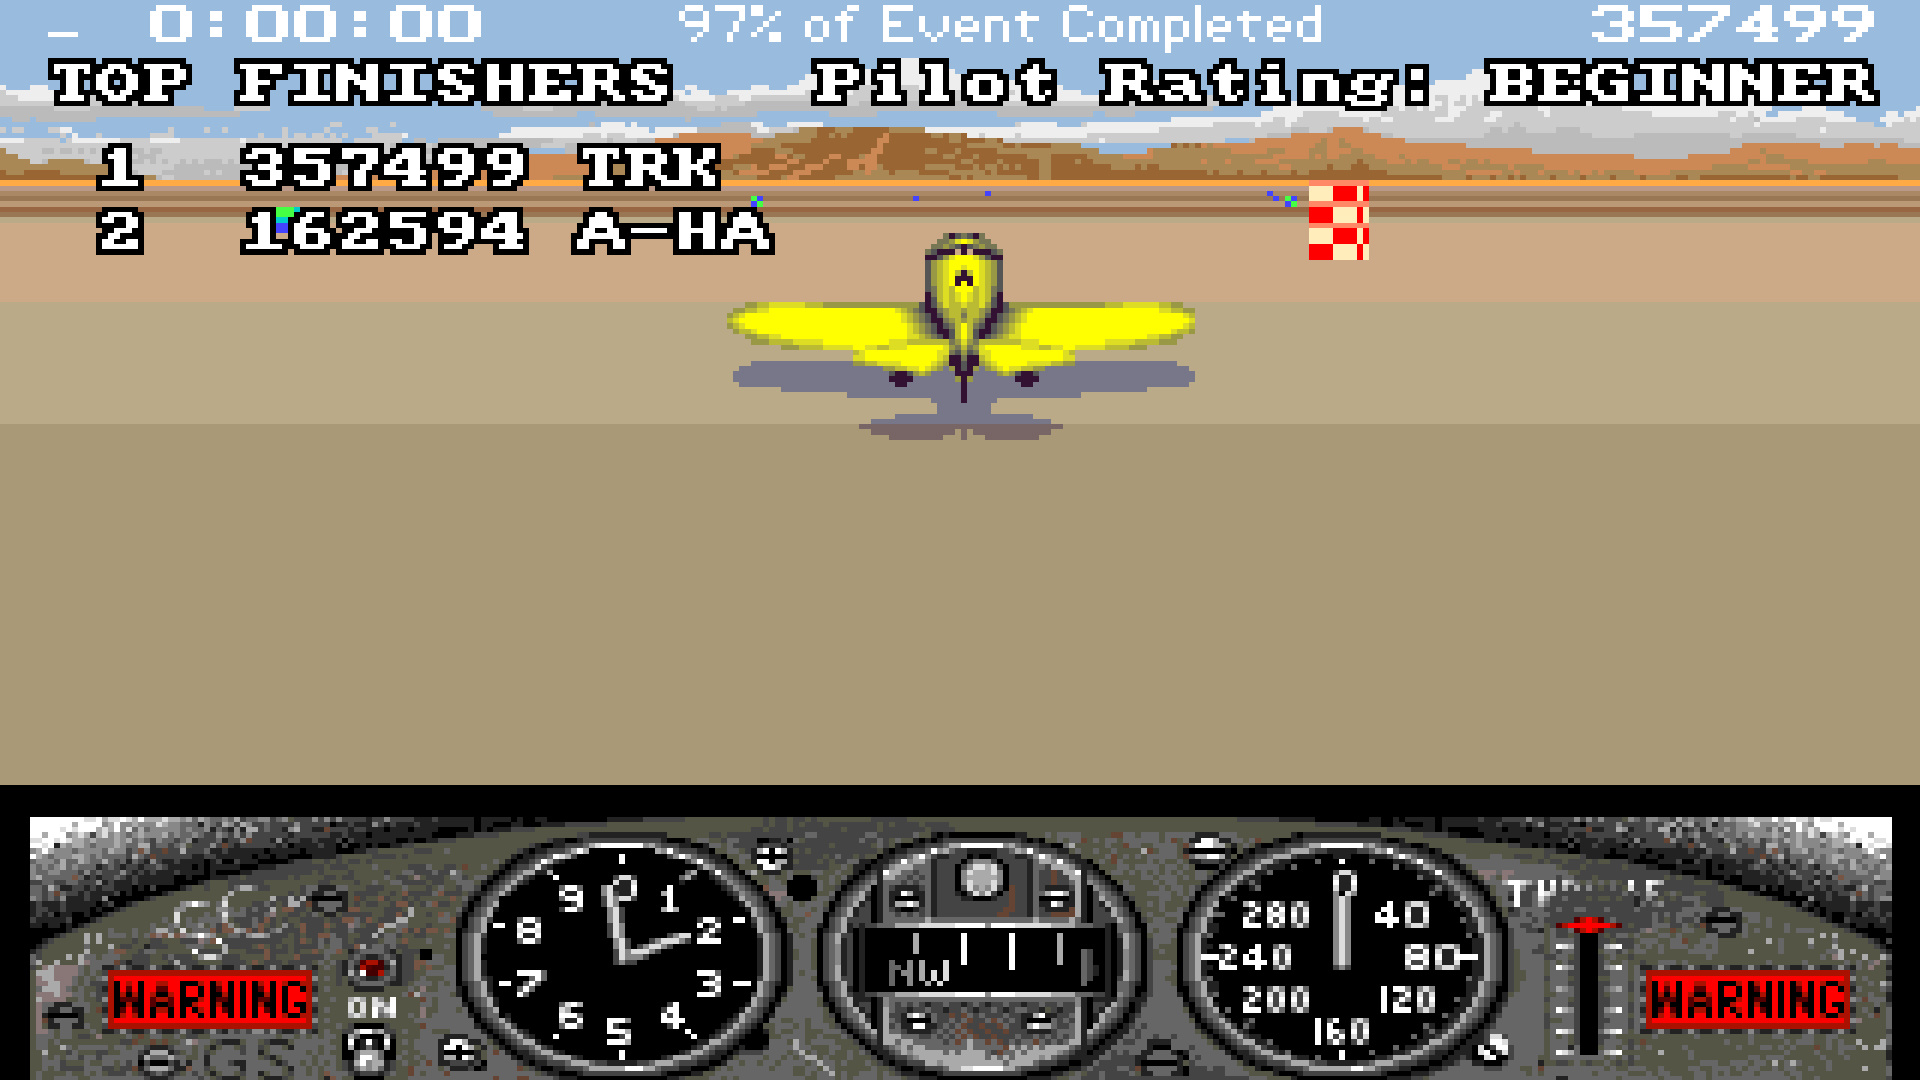 TheTrickster: Gee Bee Air Rally [Beginner] (Amiga Emulated) 357,499 points on 2015-10-05 04:56:29